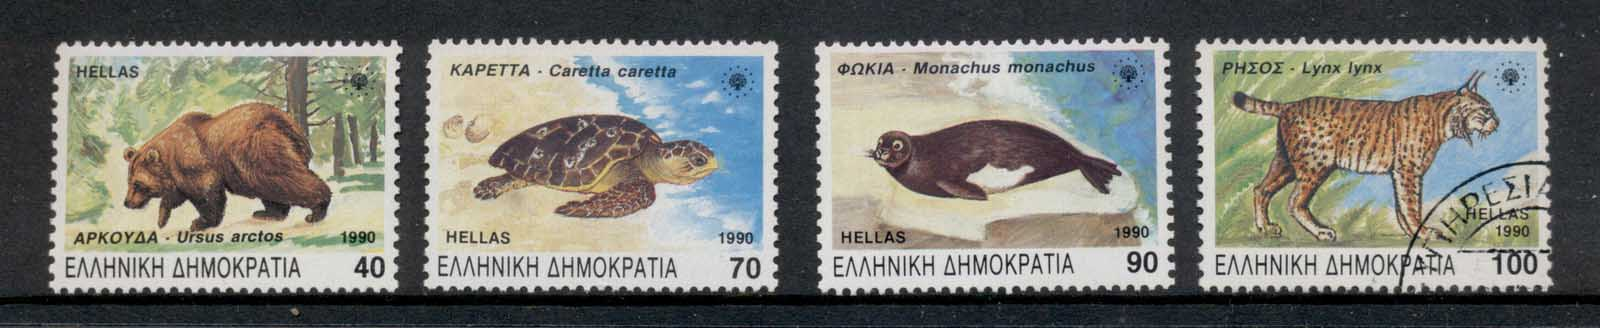 Greece 1990 Rare & Endangered Species MUH/CTO